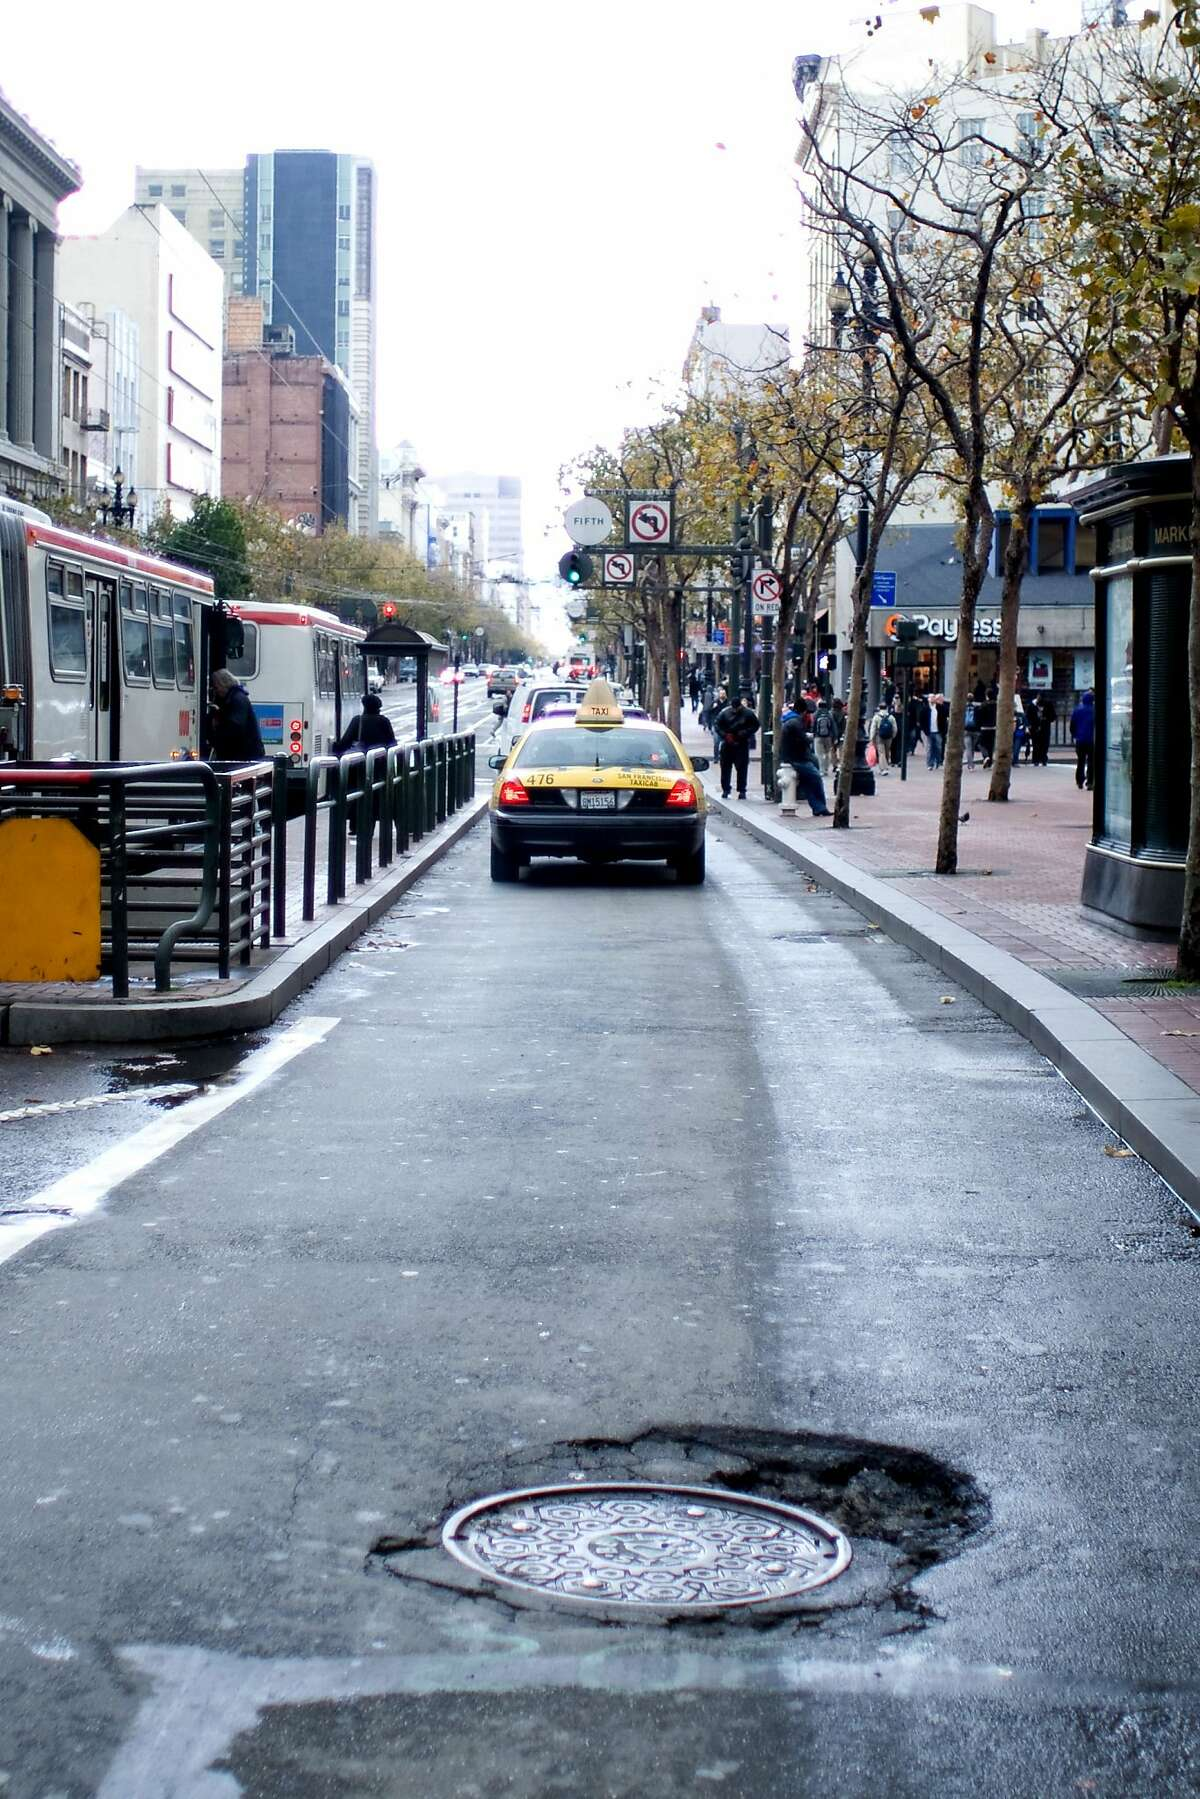 Biking has never been more popular in San Francisco, and as this bike lane shows, it's never been less respected as a form of mobility.